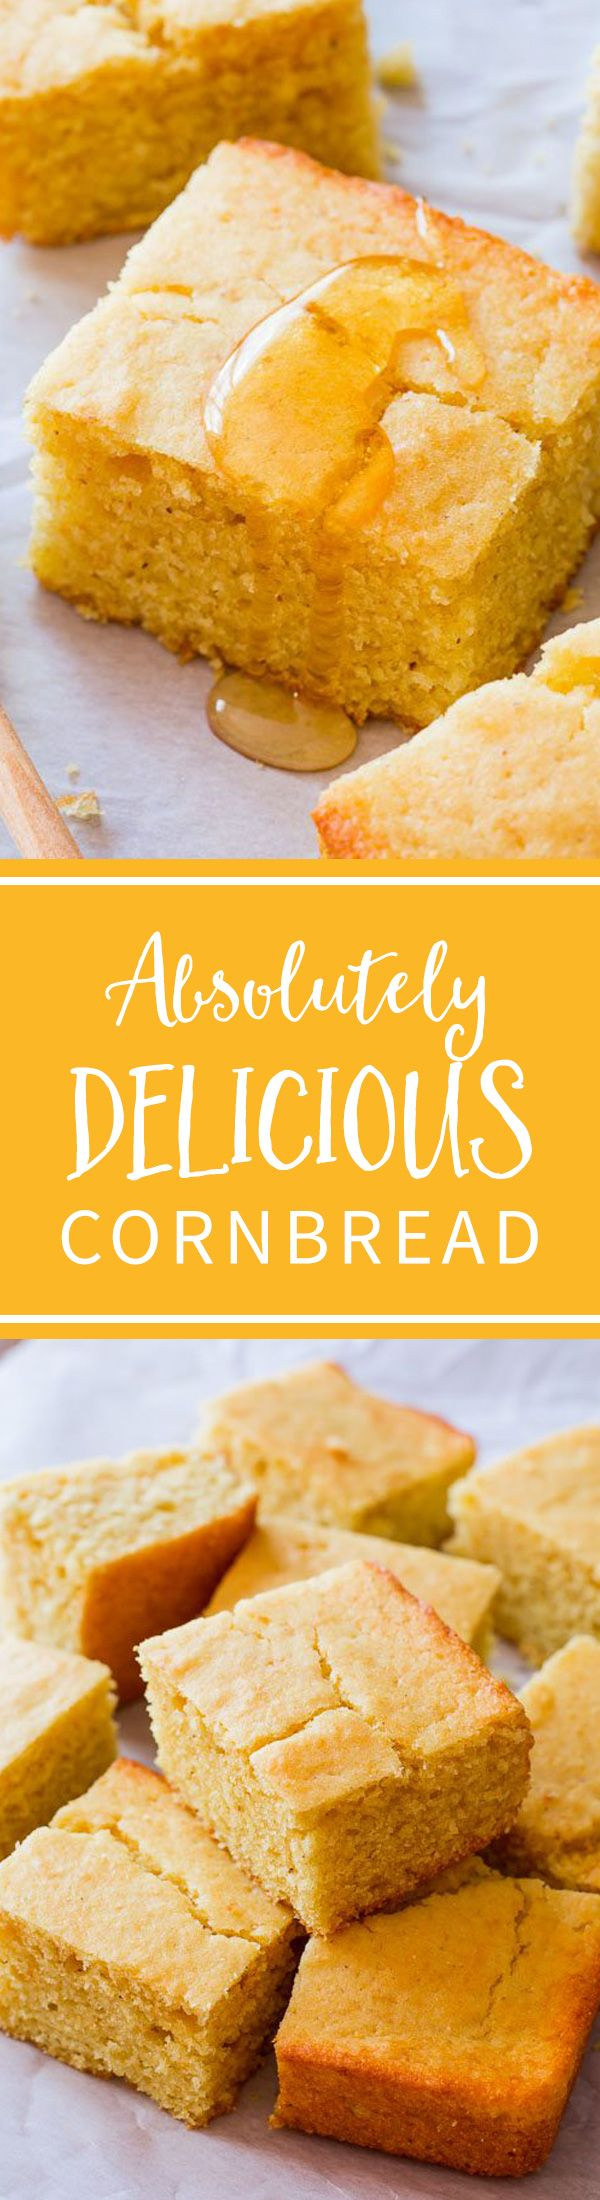 With its full flavor, tender texture, and crunchy/honey/buttery edges, it's easy for me to say that this is my favorite cornbread recipe! Recipe at sallysbakingaddiction.com (Baking Bread Quotes)